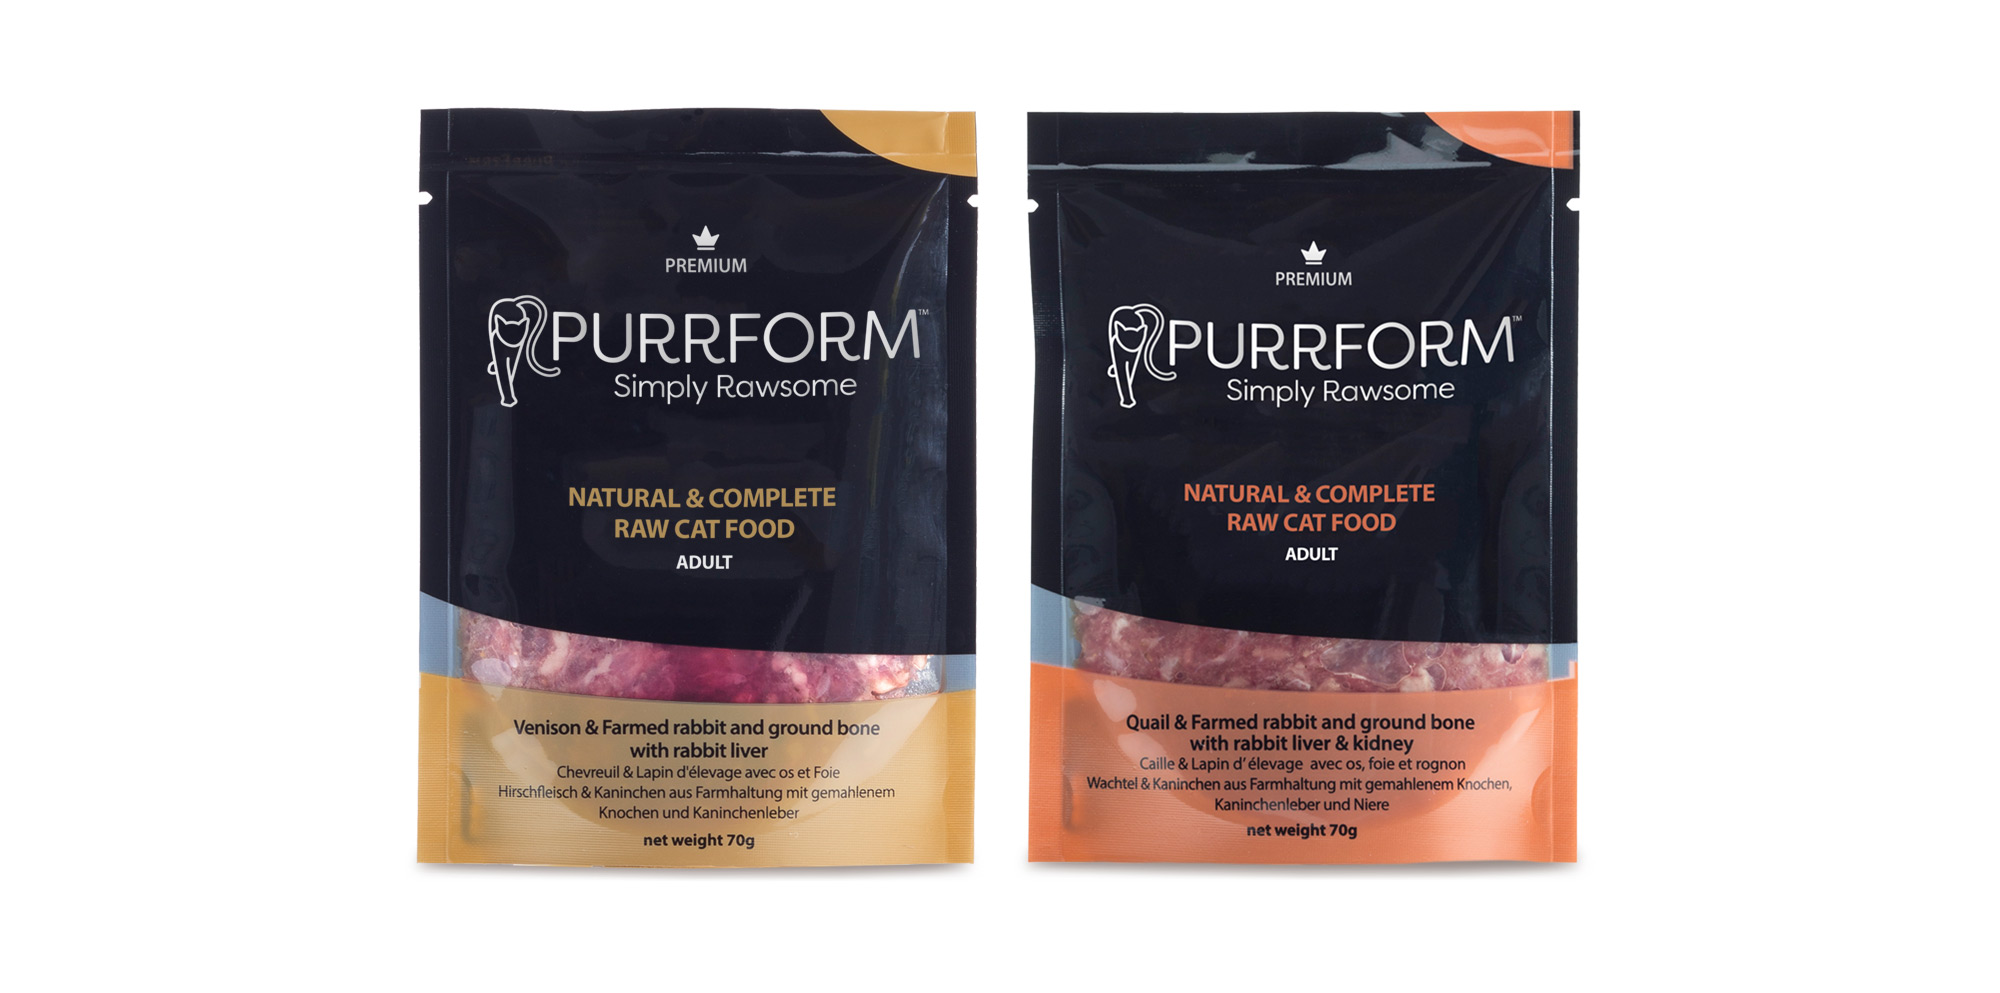 Purrform raw packaging